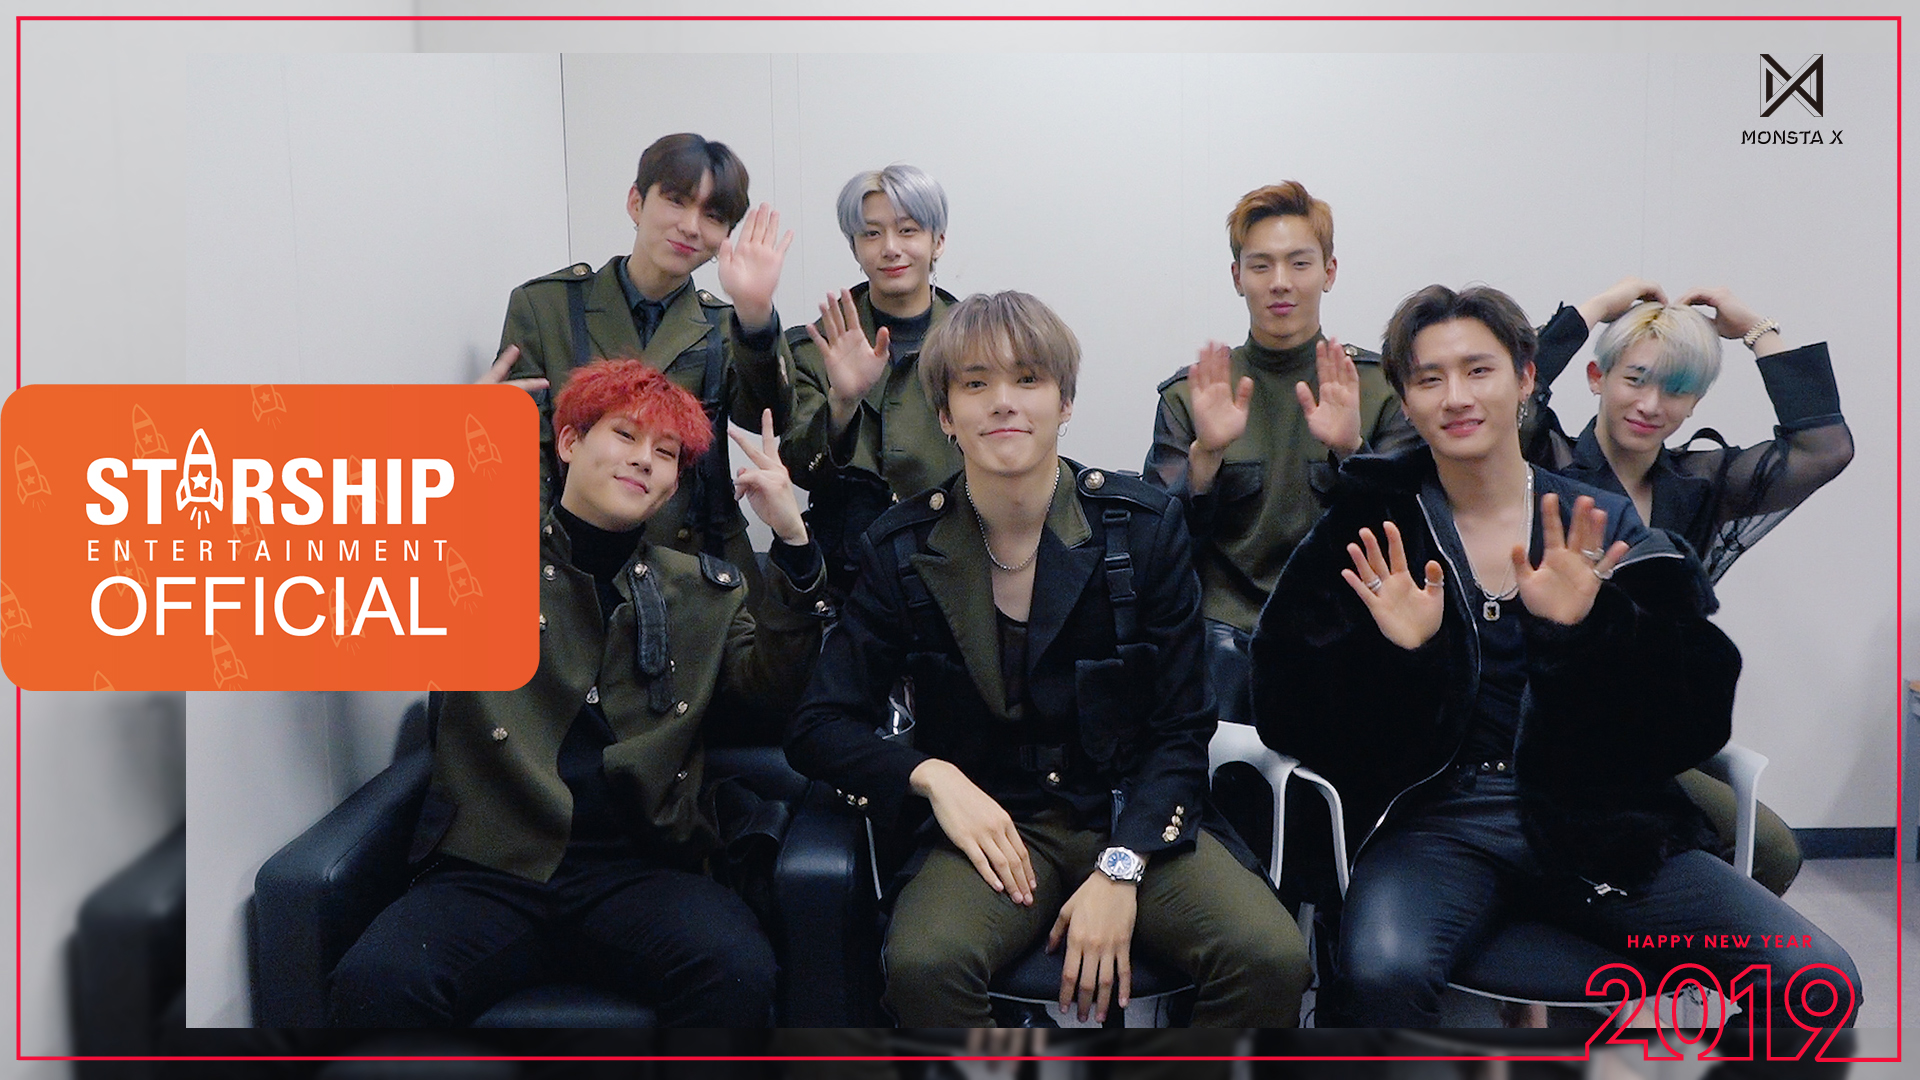 [Special Clip] 몬스타엑스 (MONSTA X) - 2019 새해 인사 (2019 New Year's Greetings)